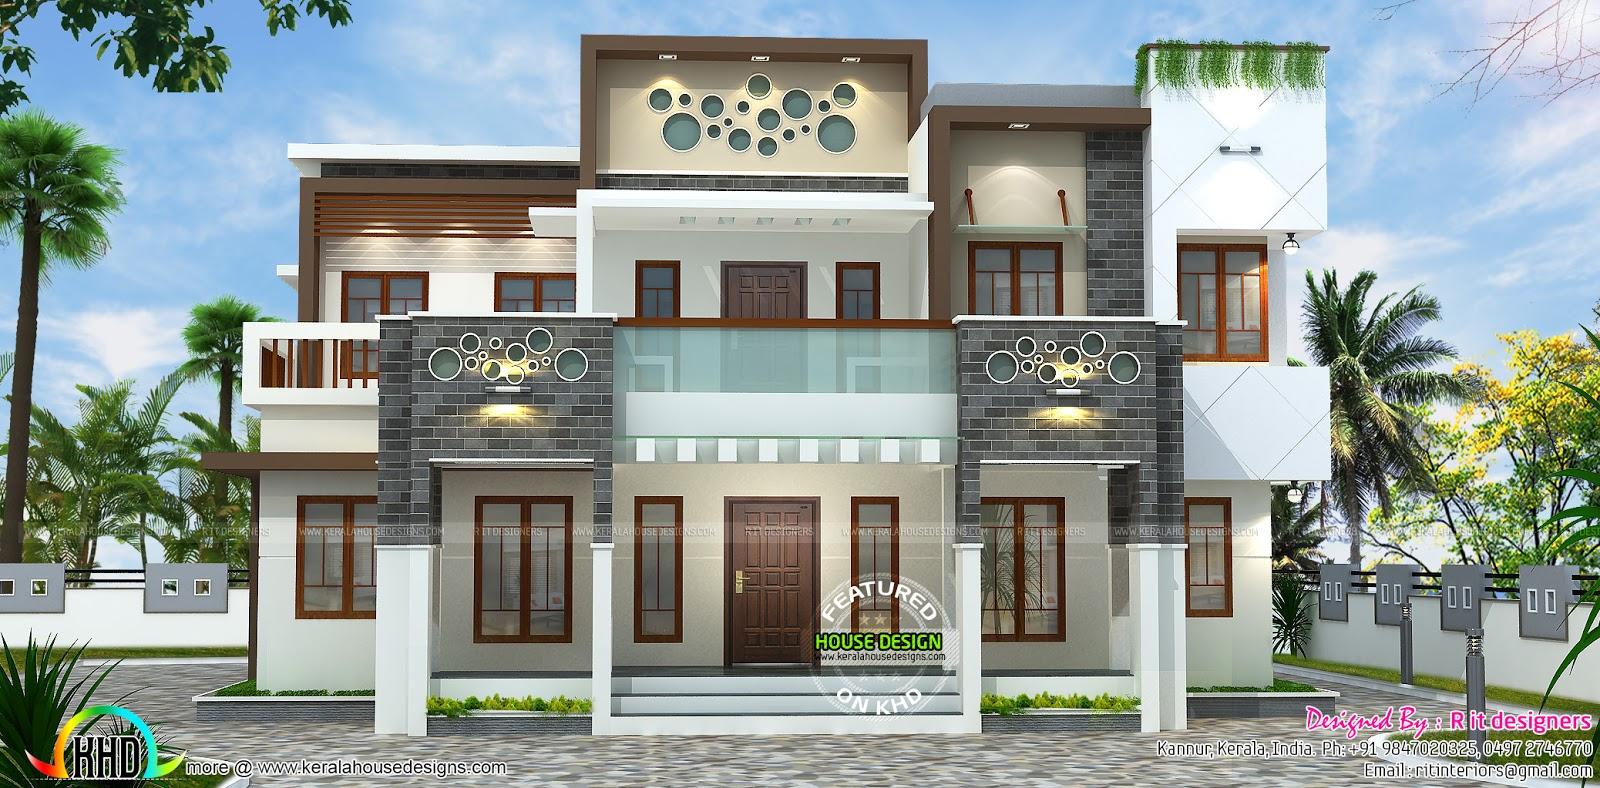 Best Kitchen Gallery: Decorative Modern House Plan Kerala Home Design And Floor Plans of Front House Elevation Design on rachelxblog.com